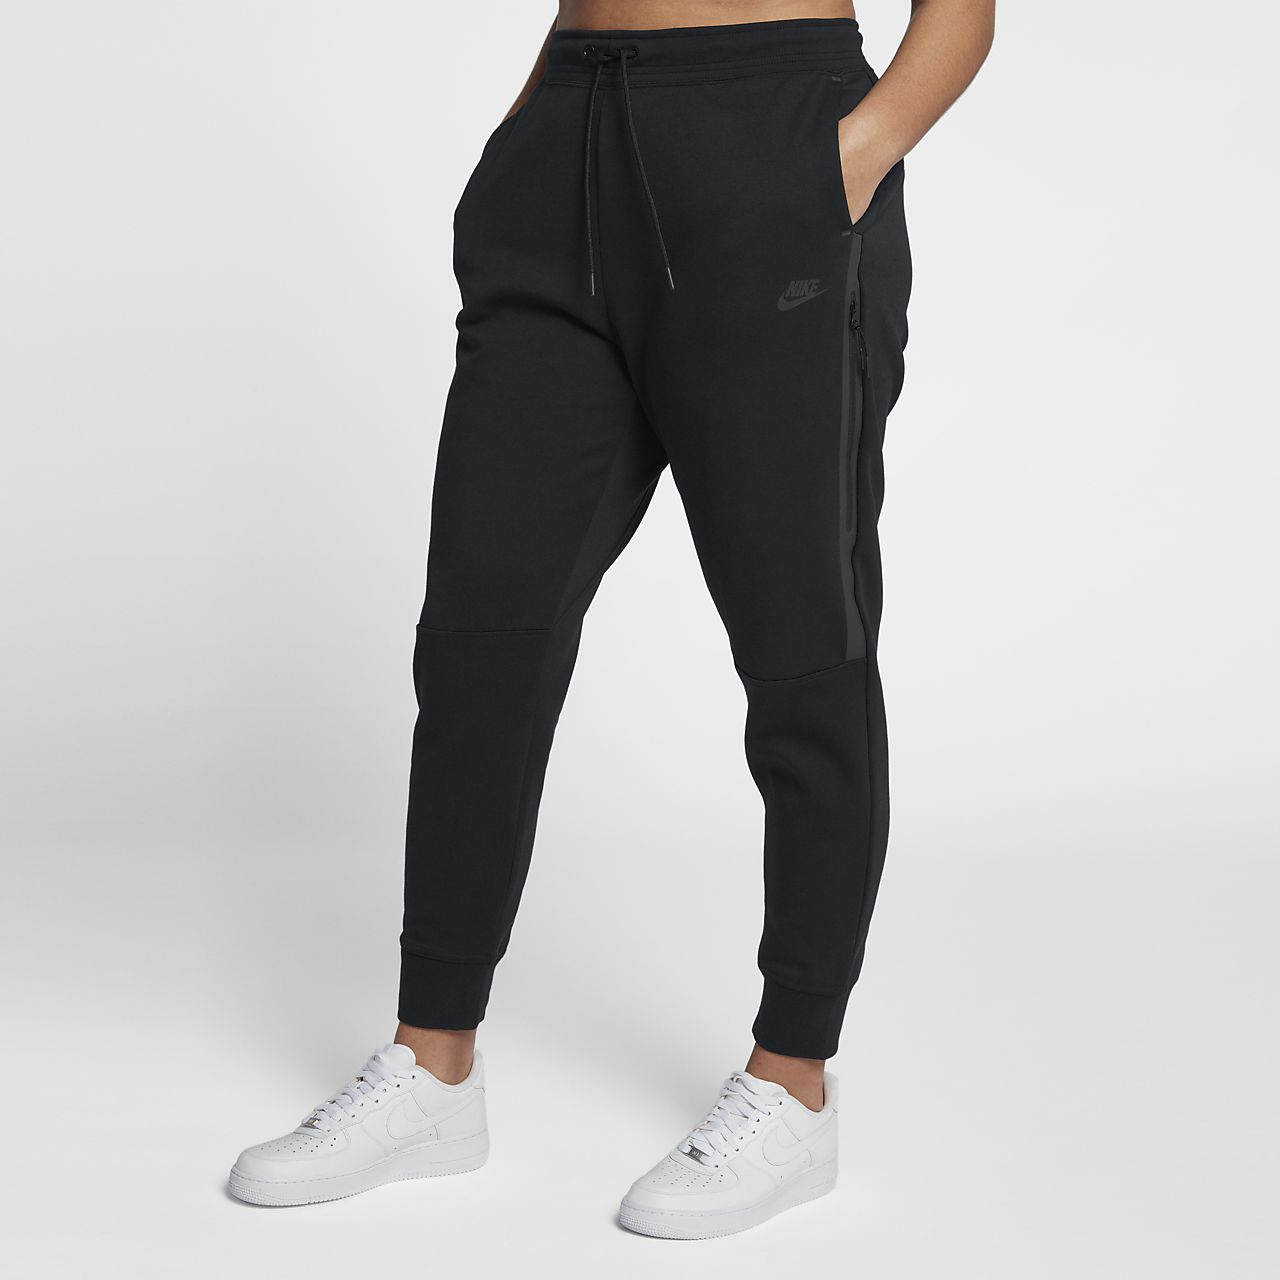 nike sportswear tech fleece women 39 s trousers gb. Black Bedroom Furniture Sets. Home Design Ideas